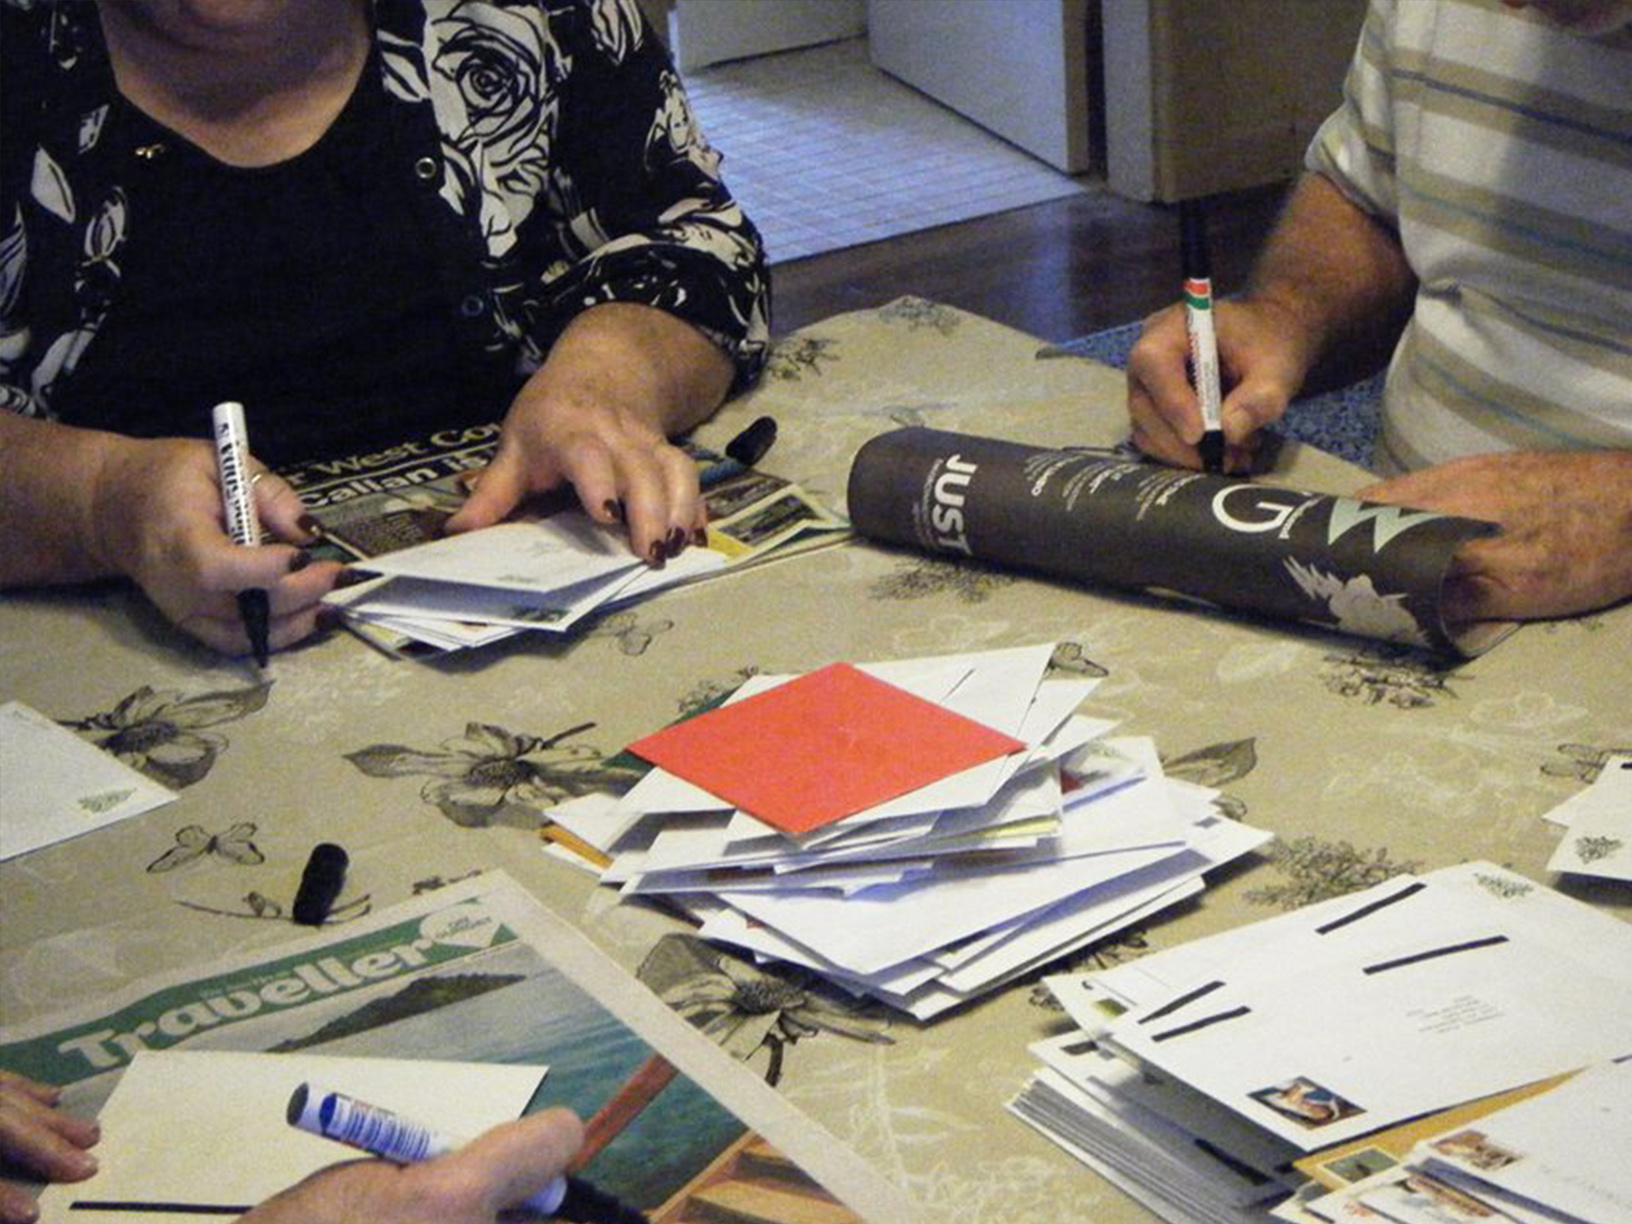 Volunteers re-addressing Christmas cards